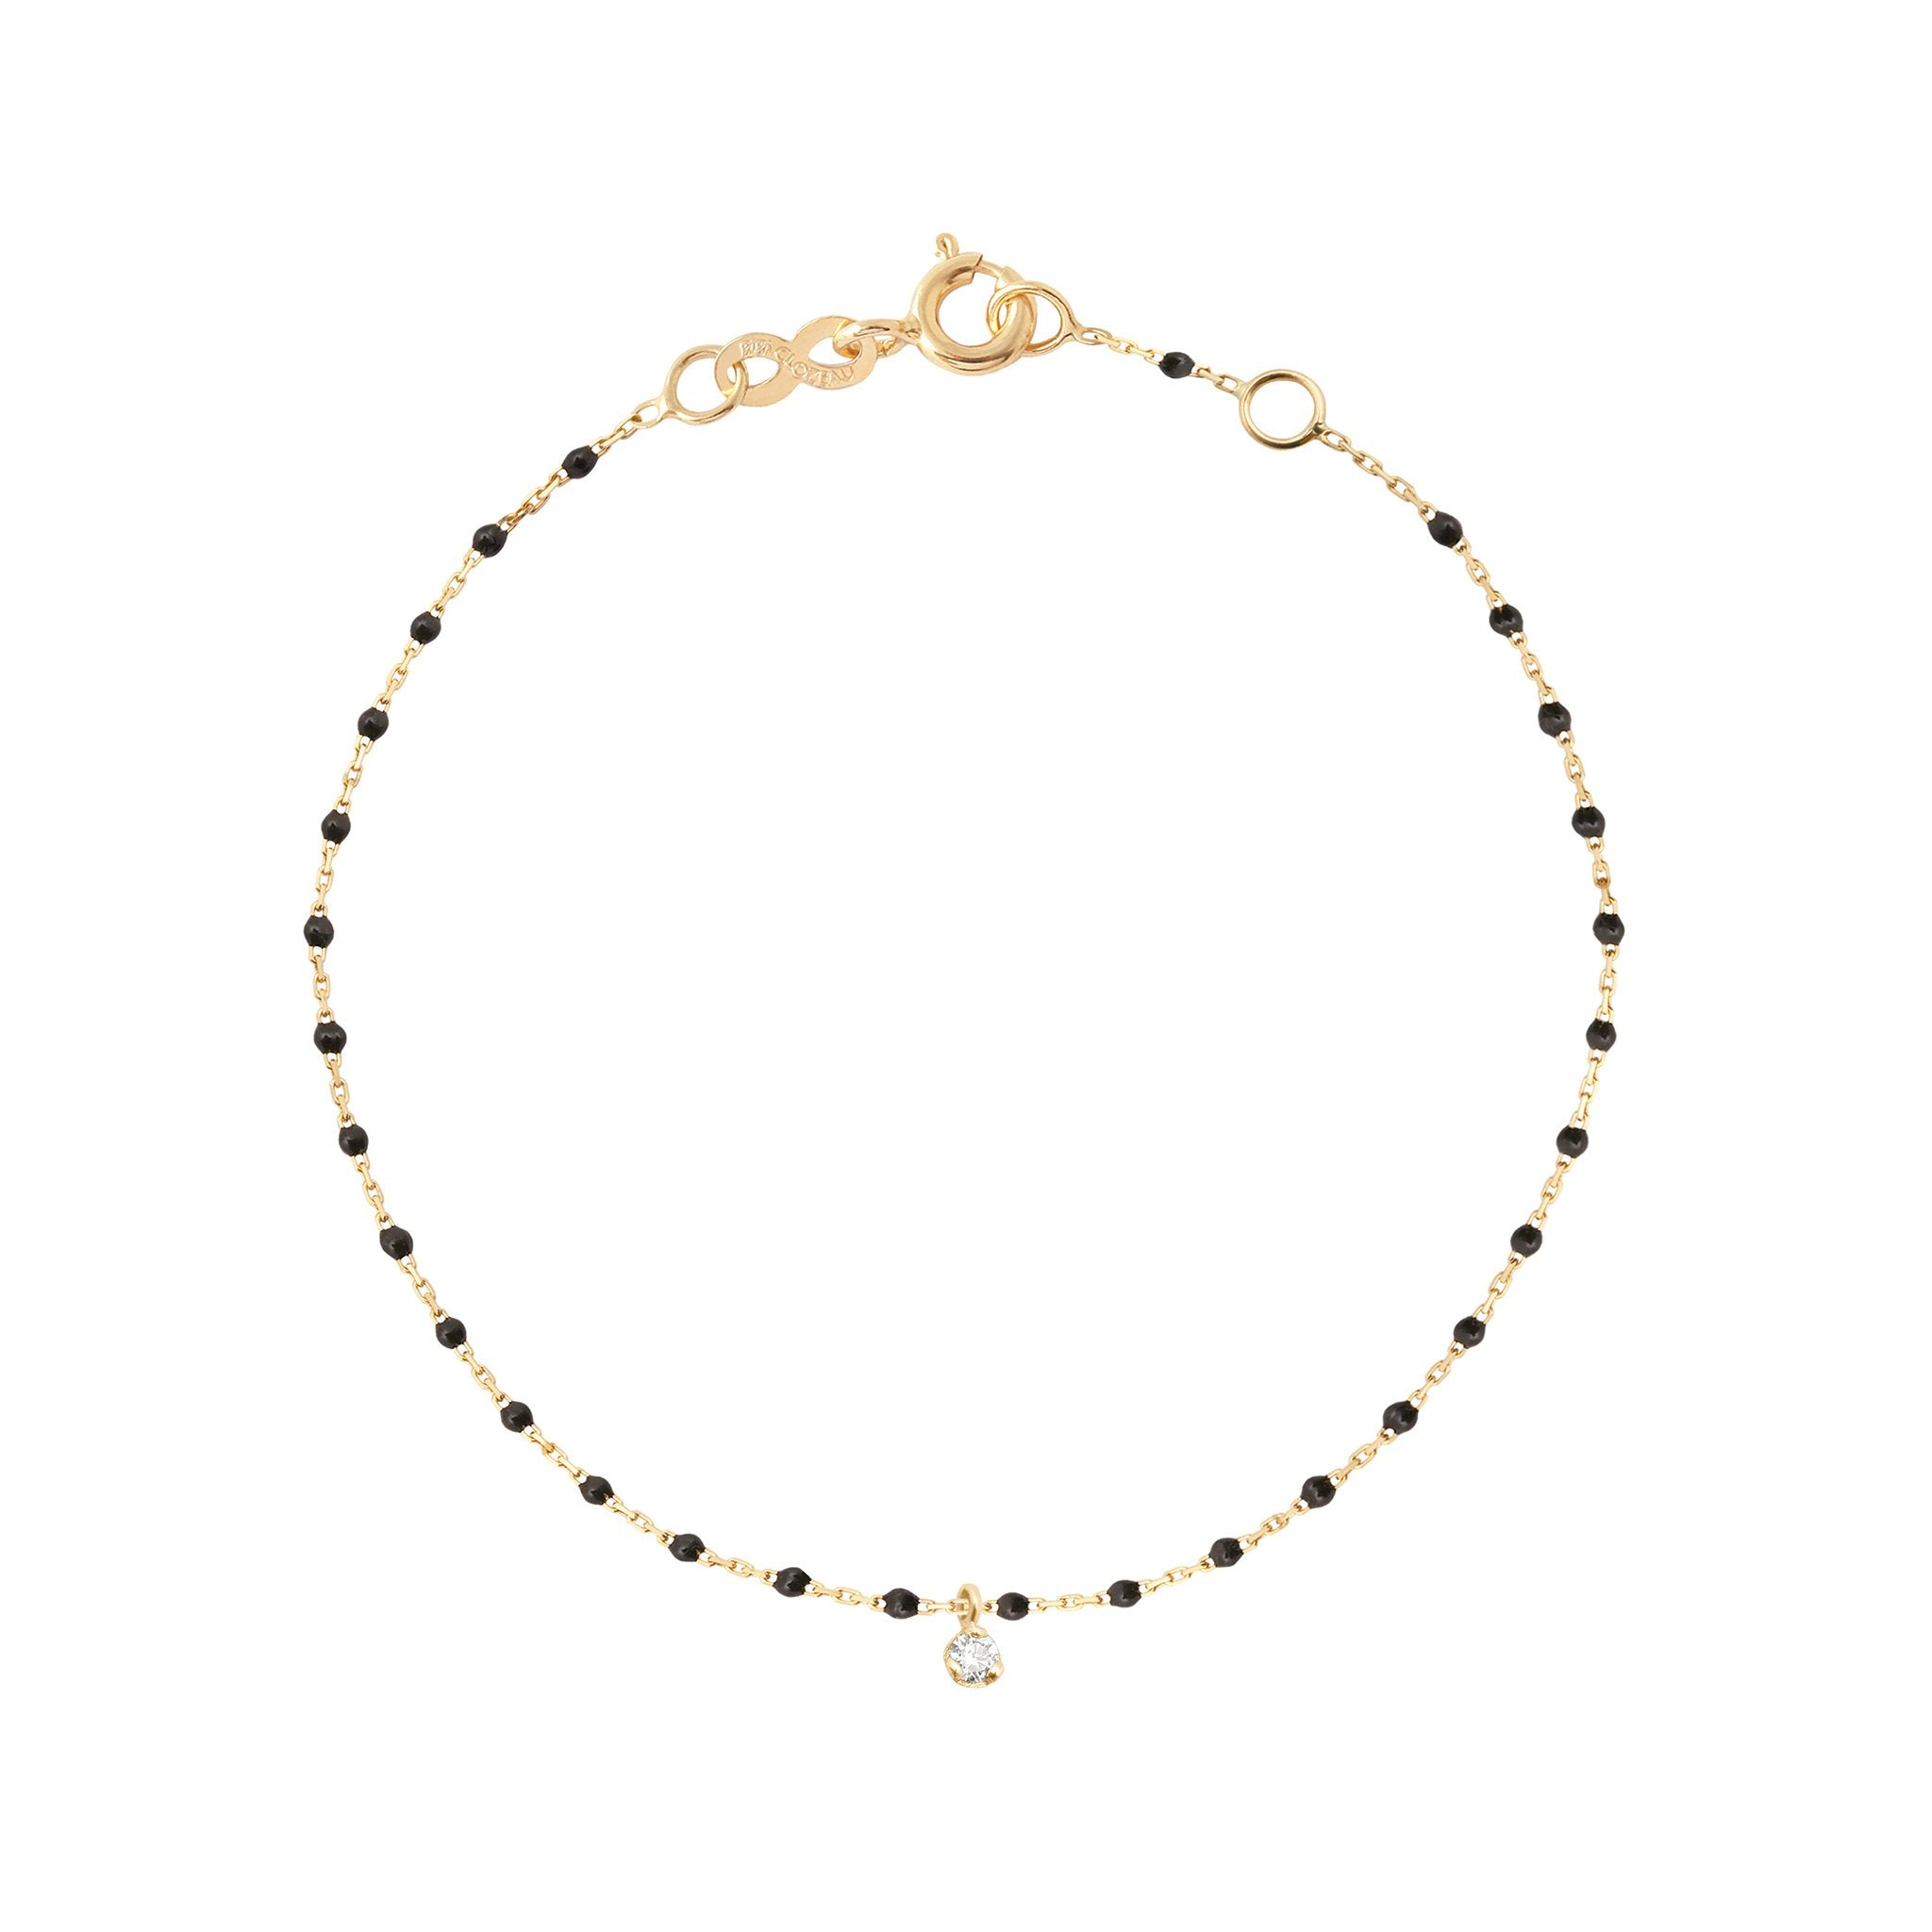 Gigi Clozeau - Mini Gigi Black bracelet, Yellow Gold 1 Diamond, 6.7""